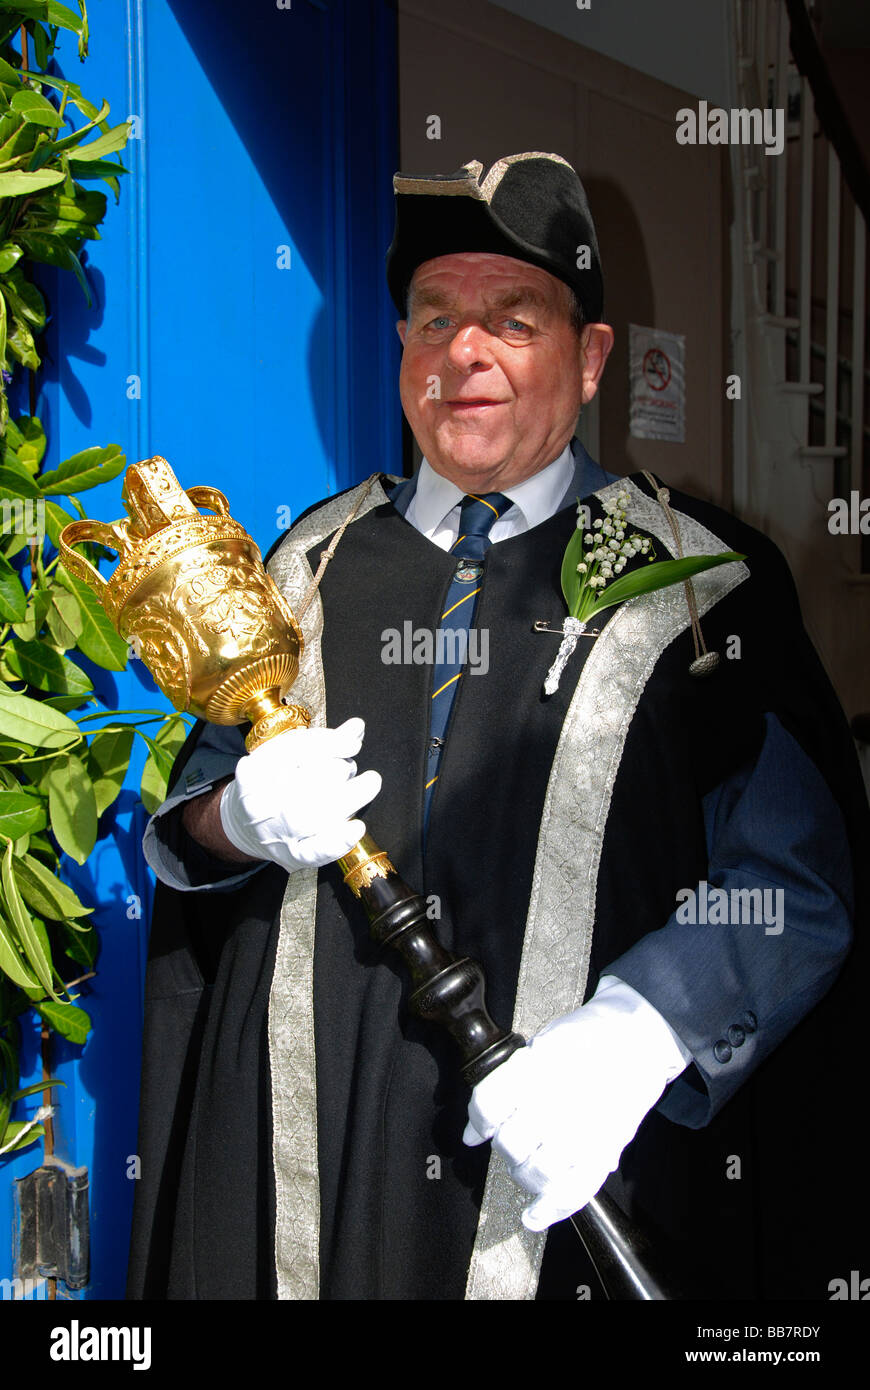 a town hall official on 'flora day' in helston,cornwall,uk - Stock Image